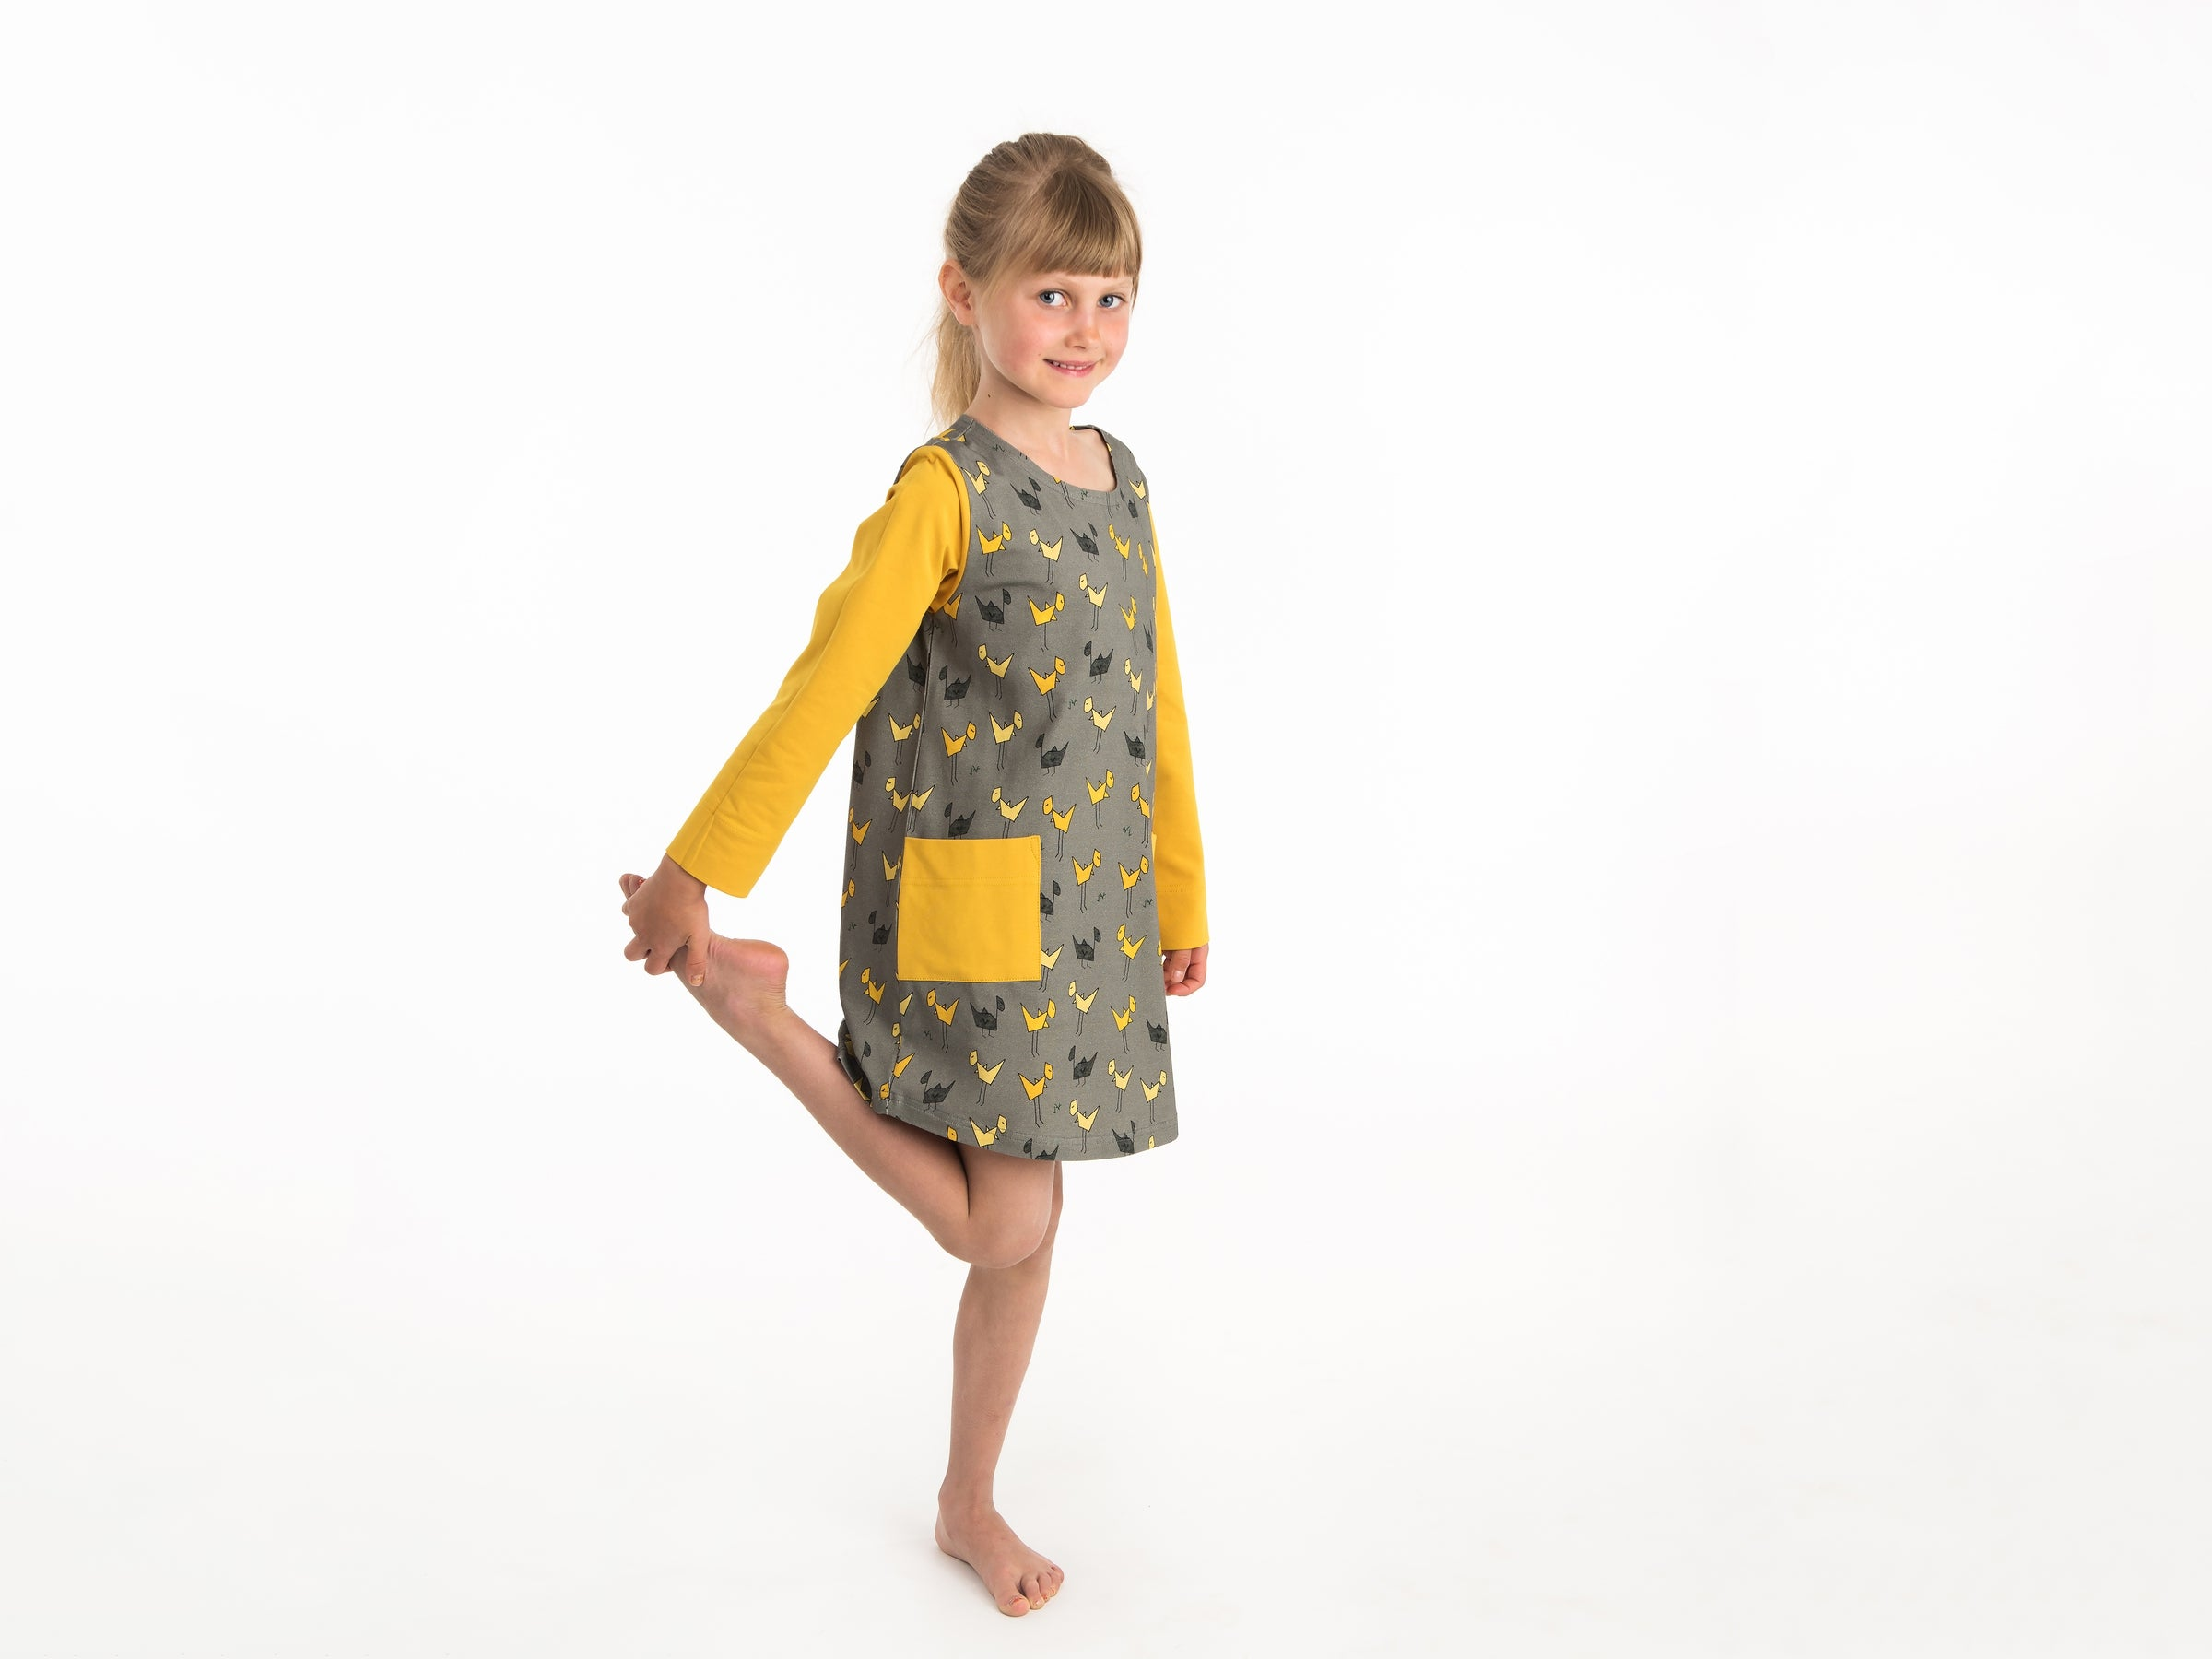 UGLY DUCKLING, Tunic